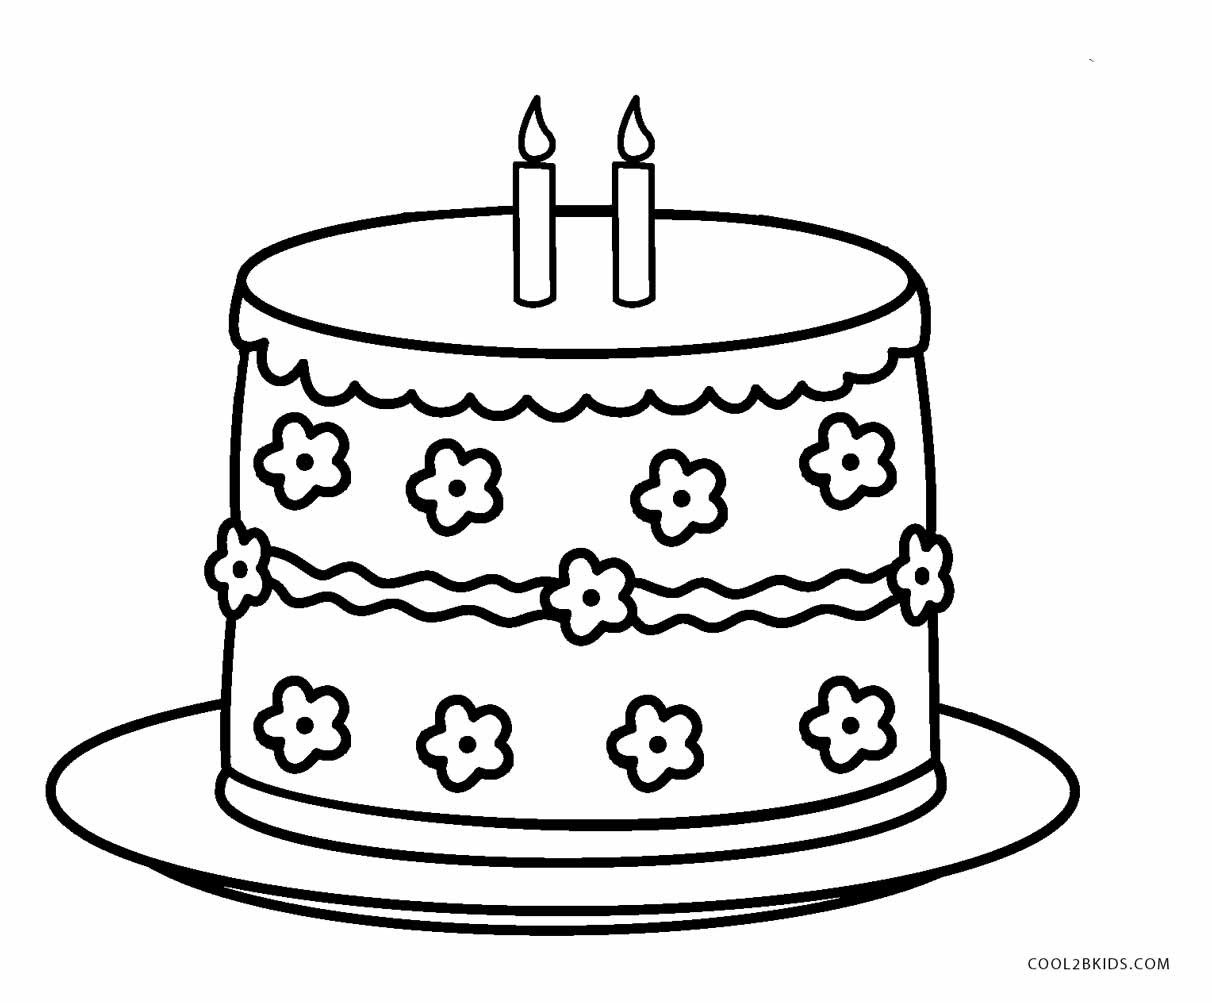 coloring pages cake free printable birthday cake coloring pages for kids coloring pages cake 1 2